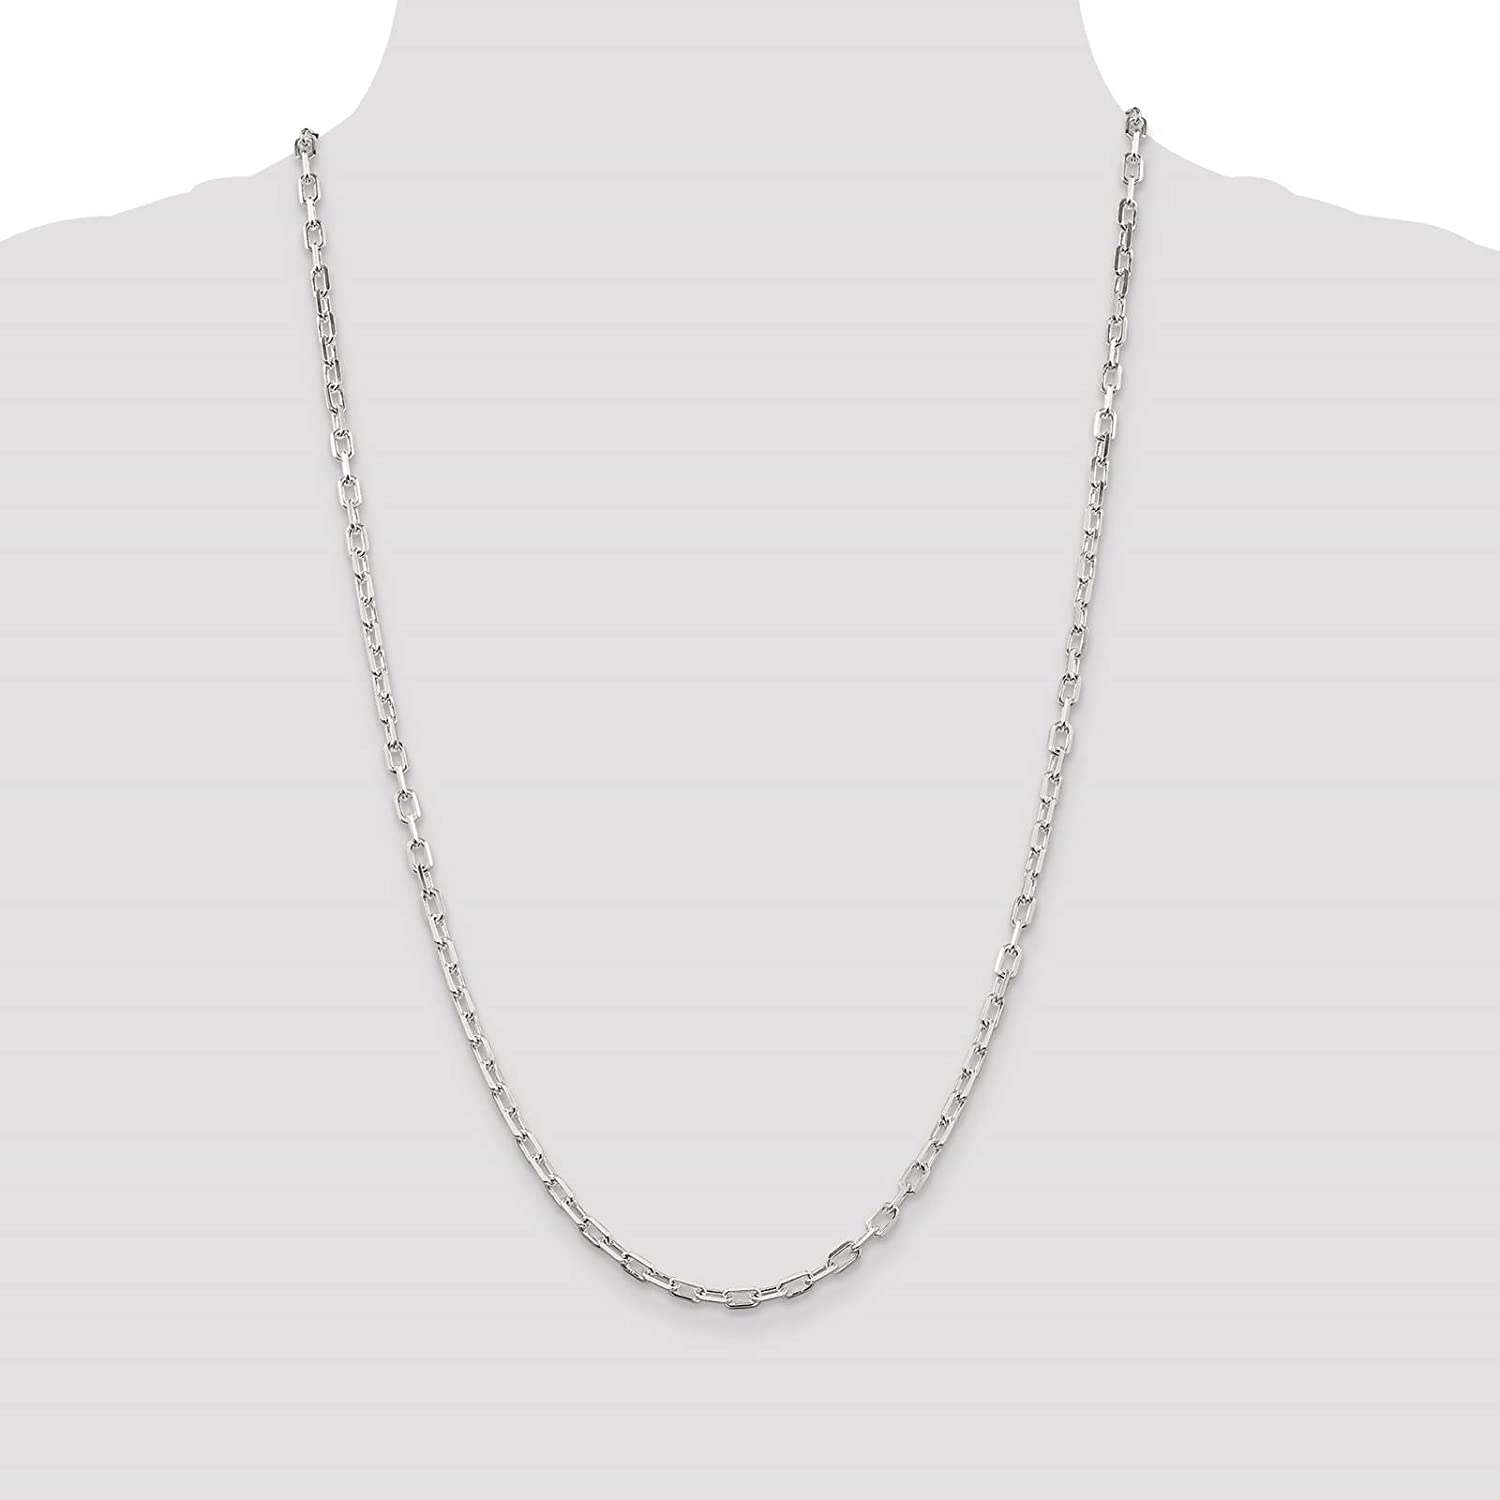 925 Sterling Silver 3.5mm Diamond-Cut Open Link Cable Chain Necklace 7-24